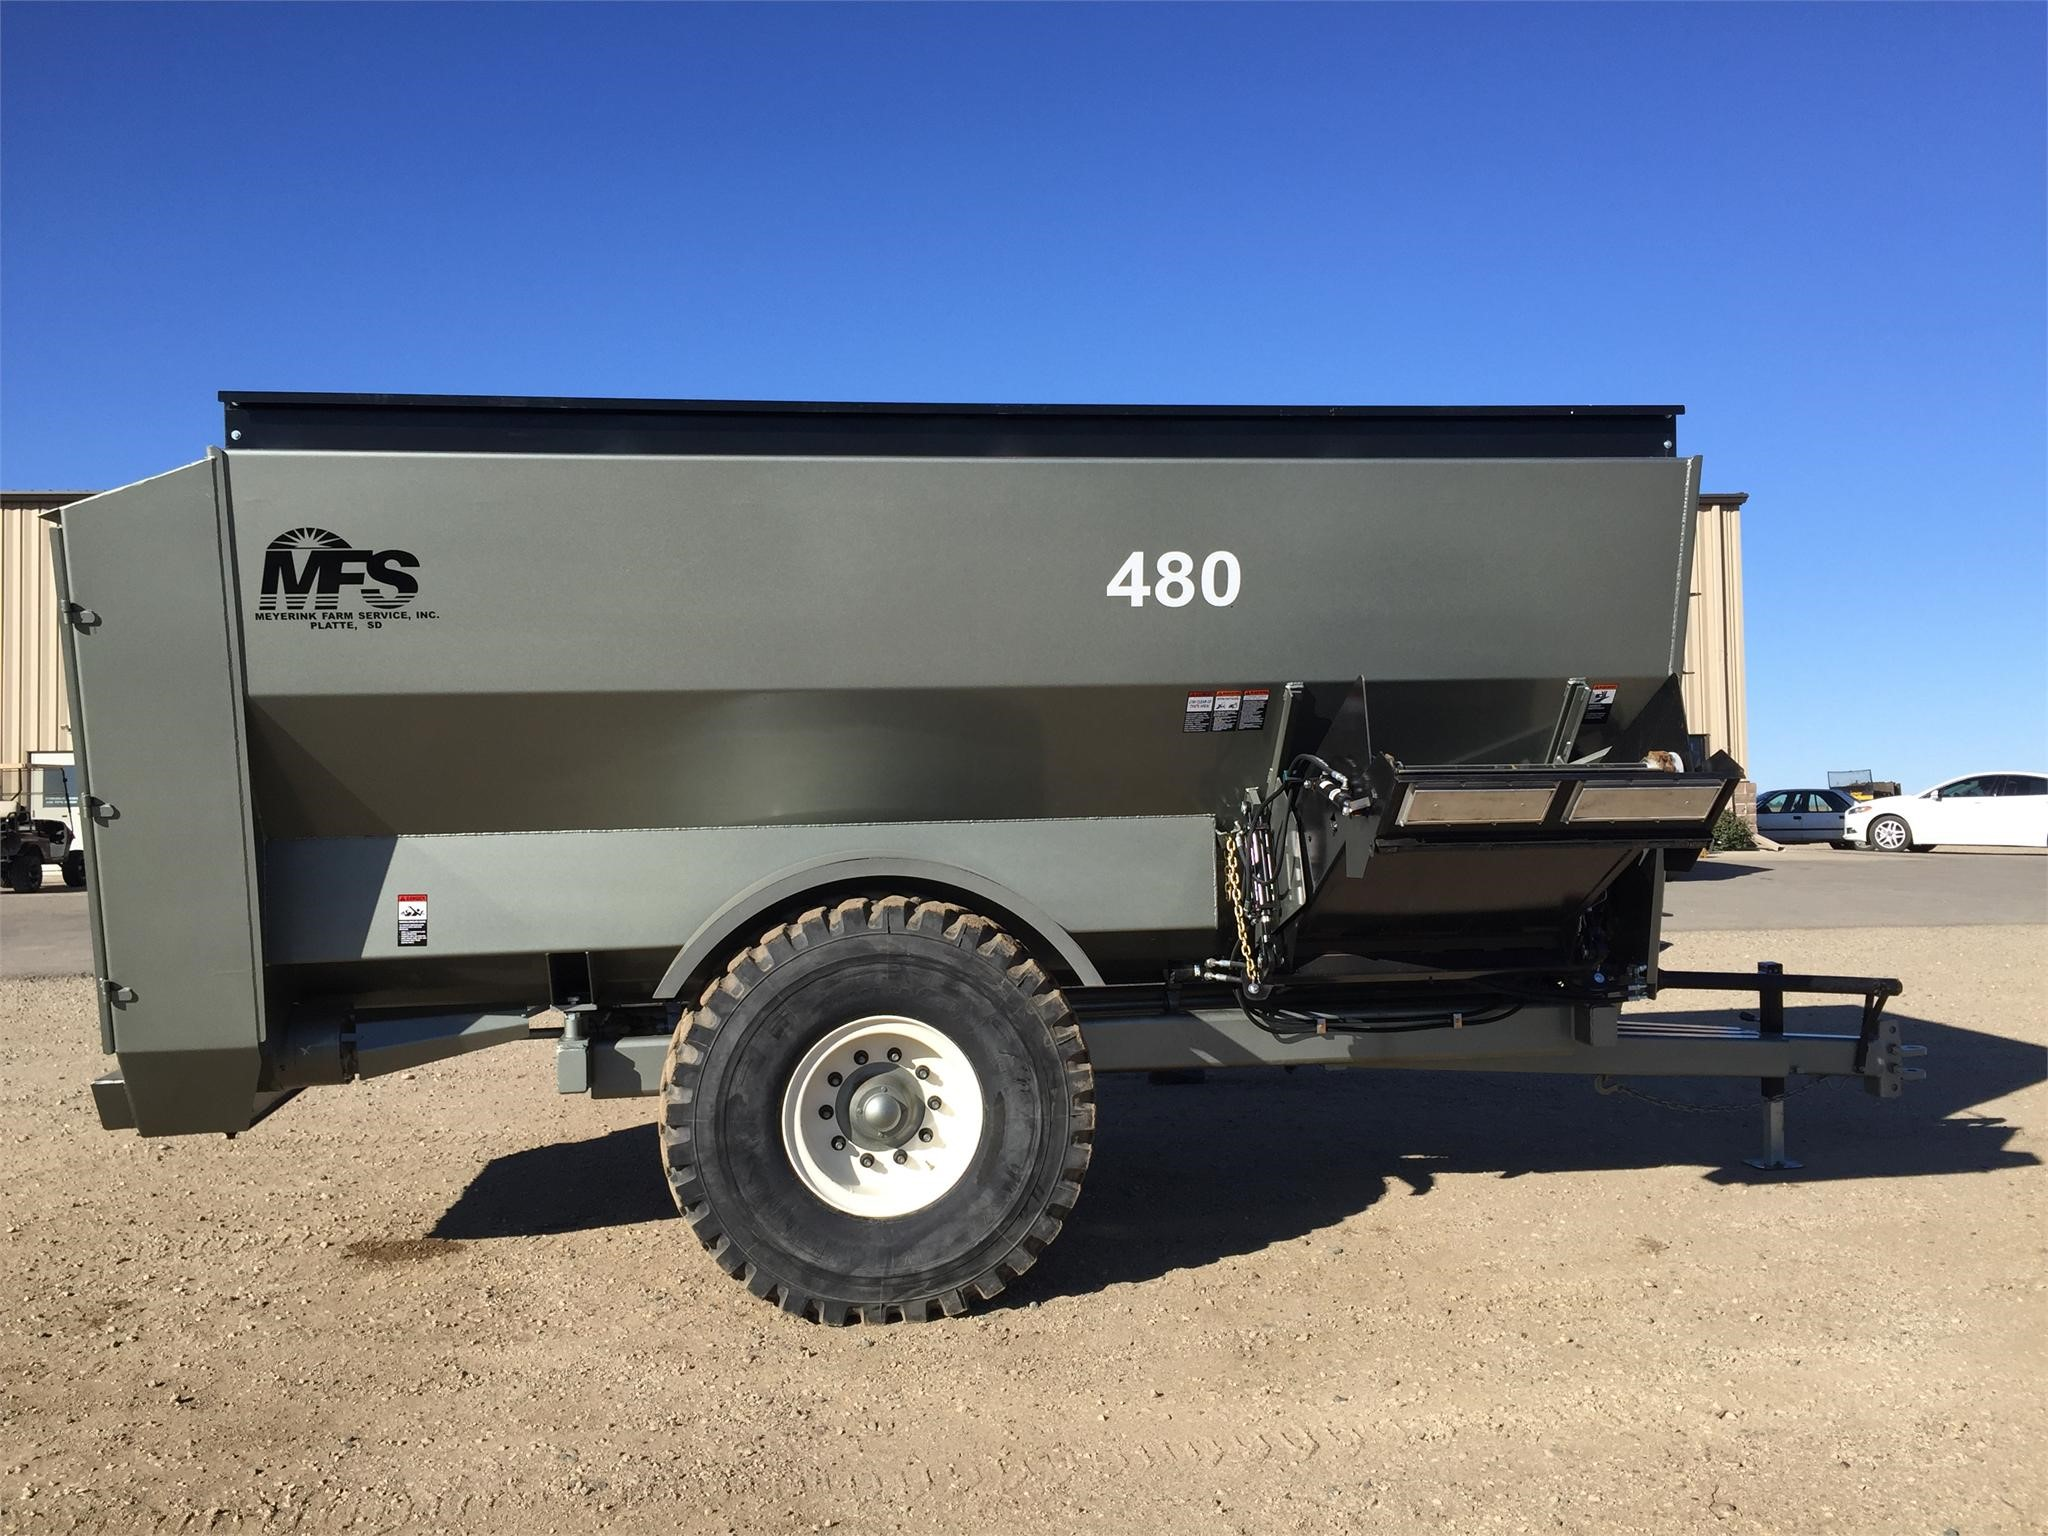 2020 Meyerink Farm Service 480 Grinders and Mixer